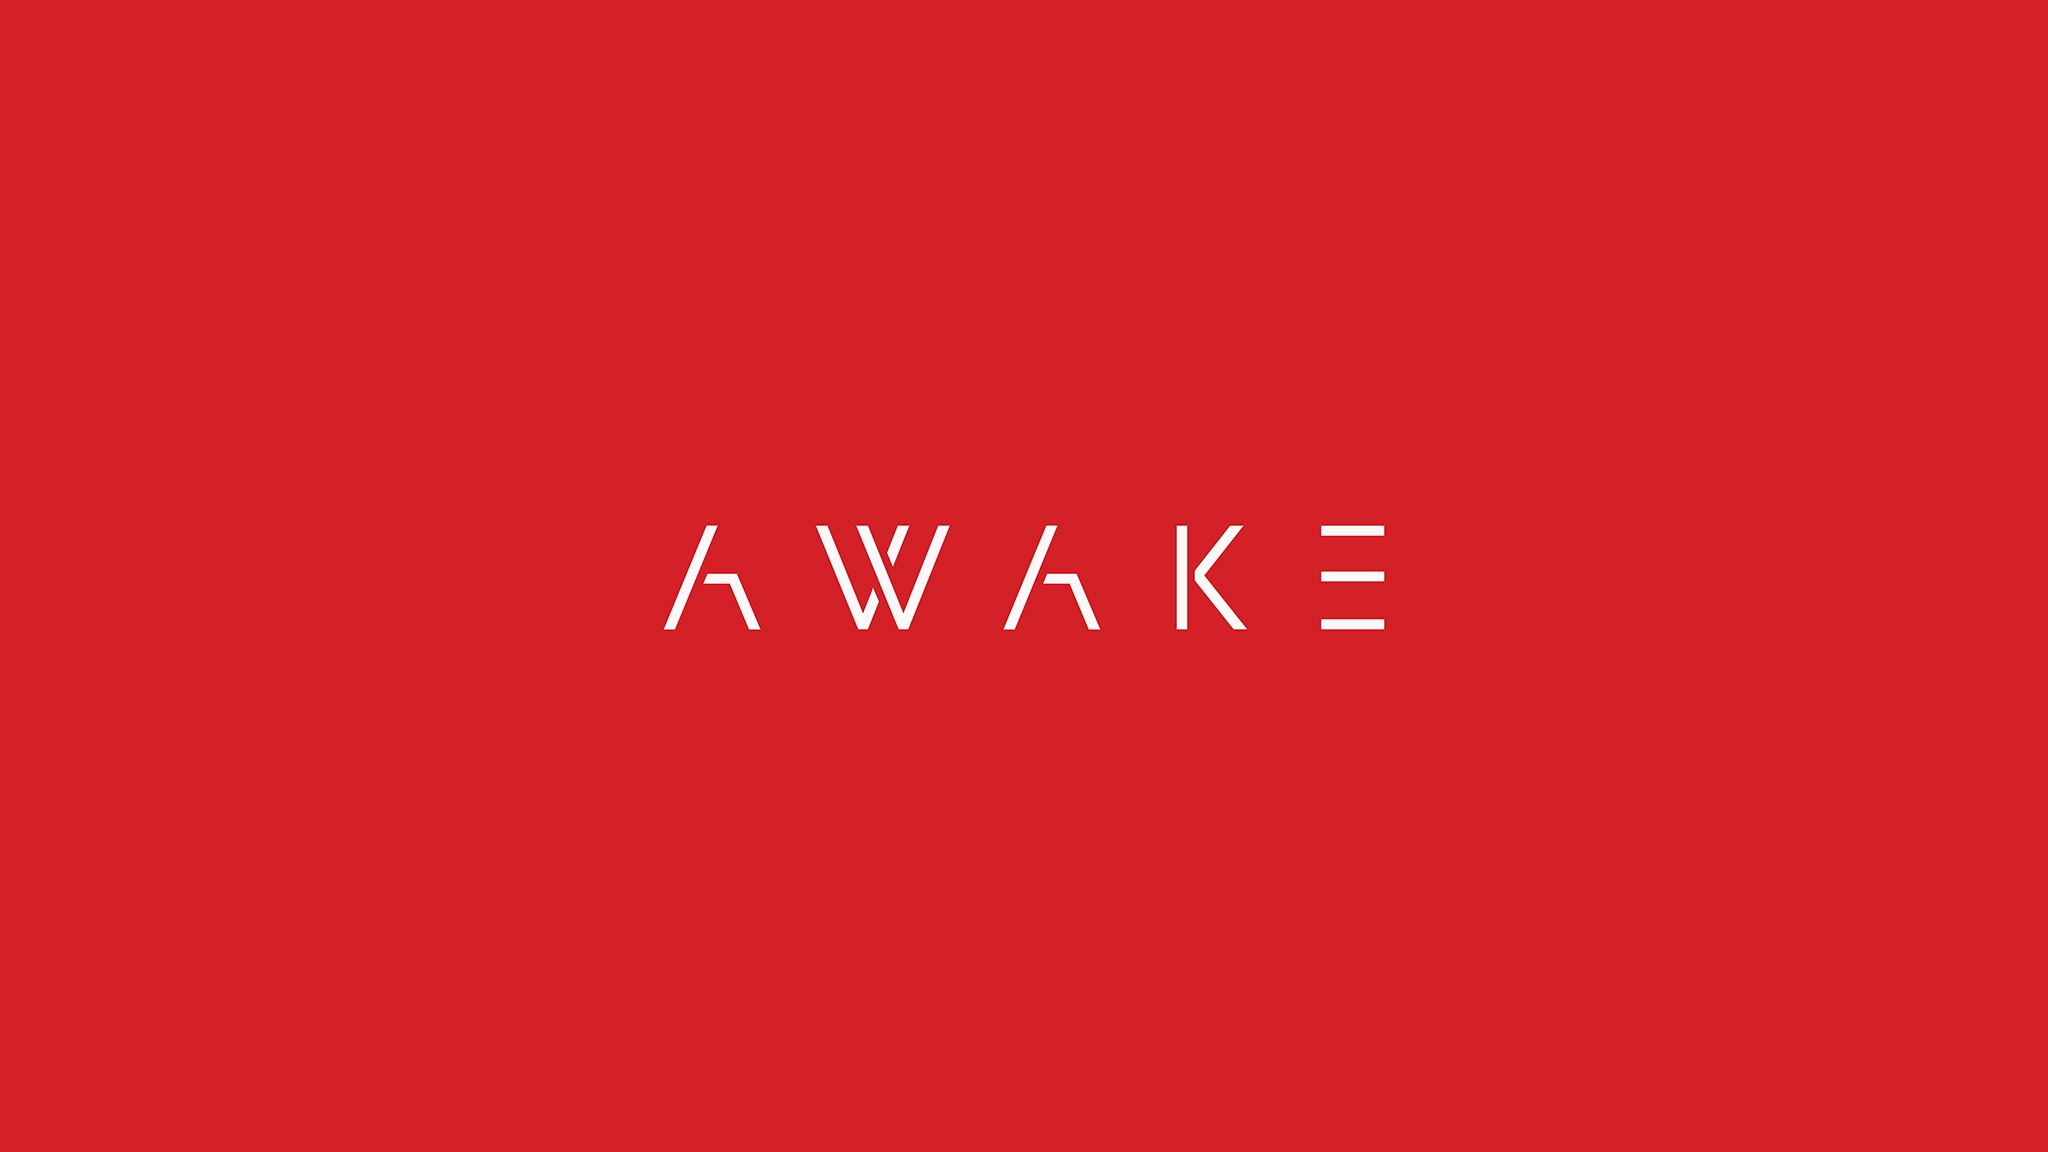 (@awakegraphicsart) Cover Image